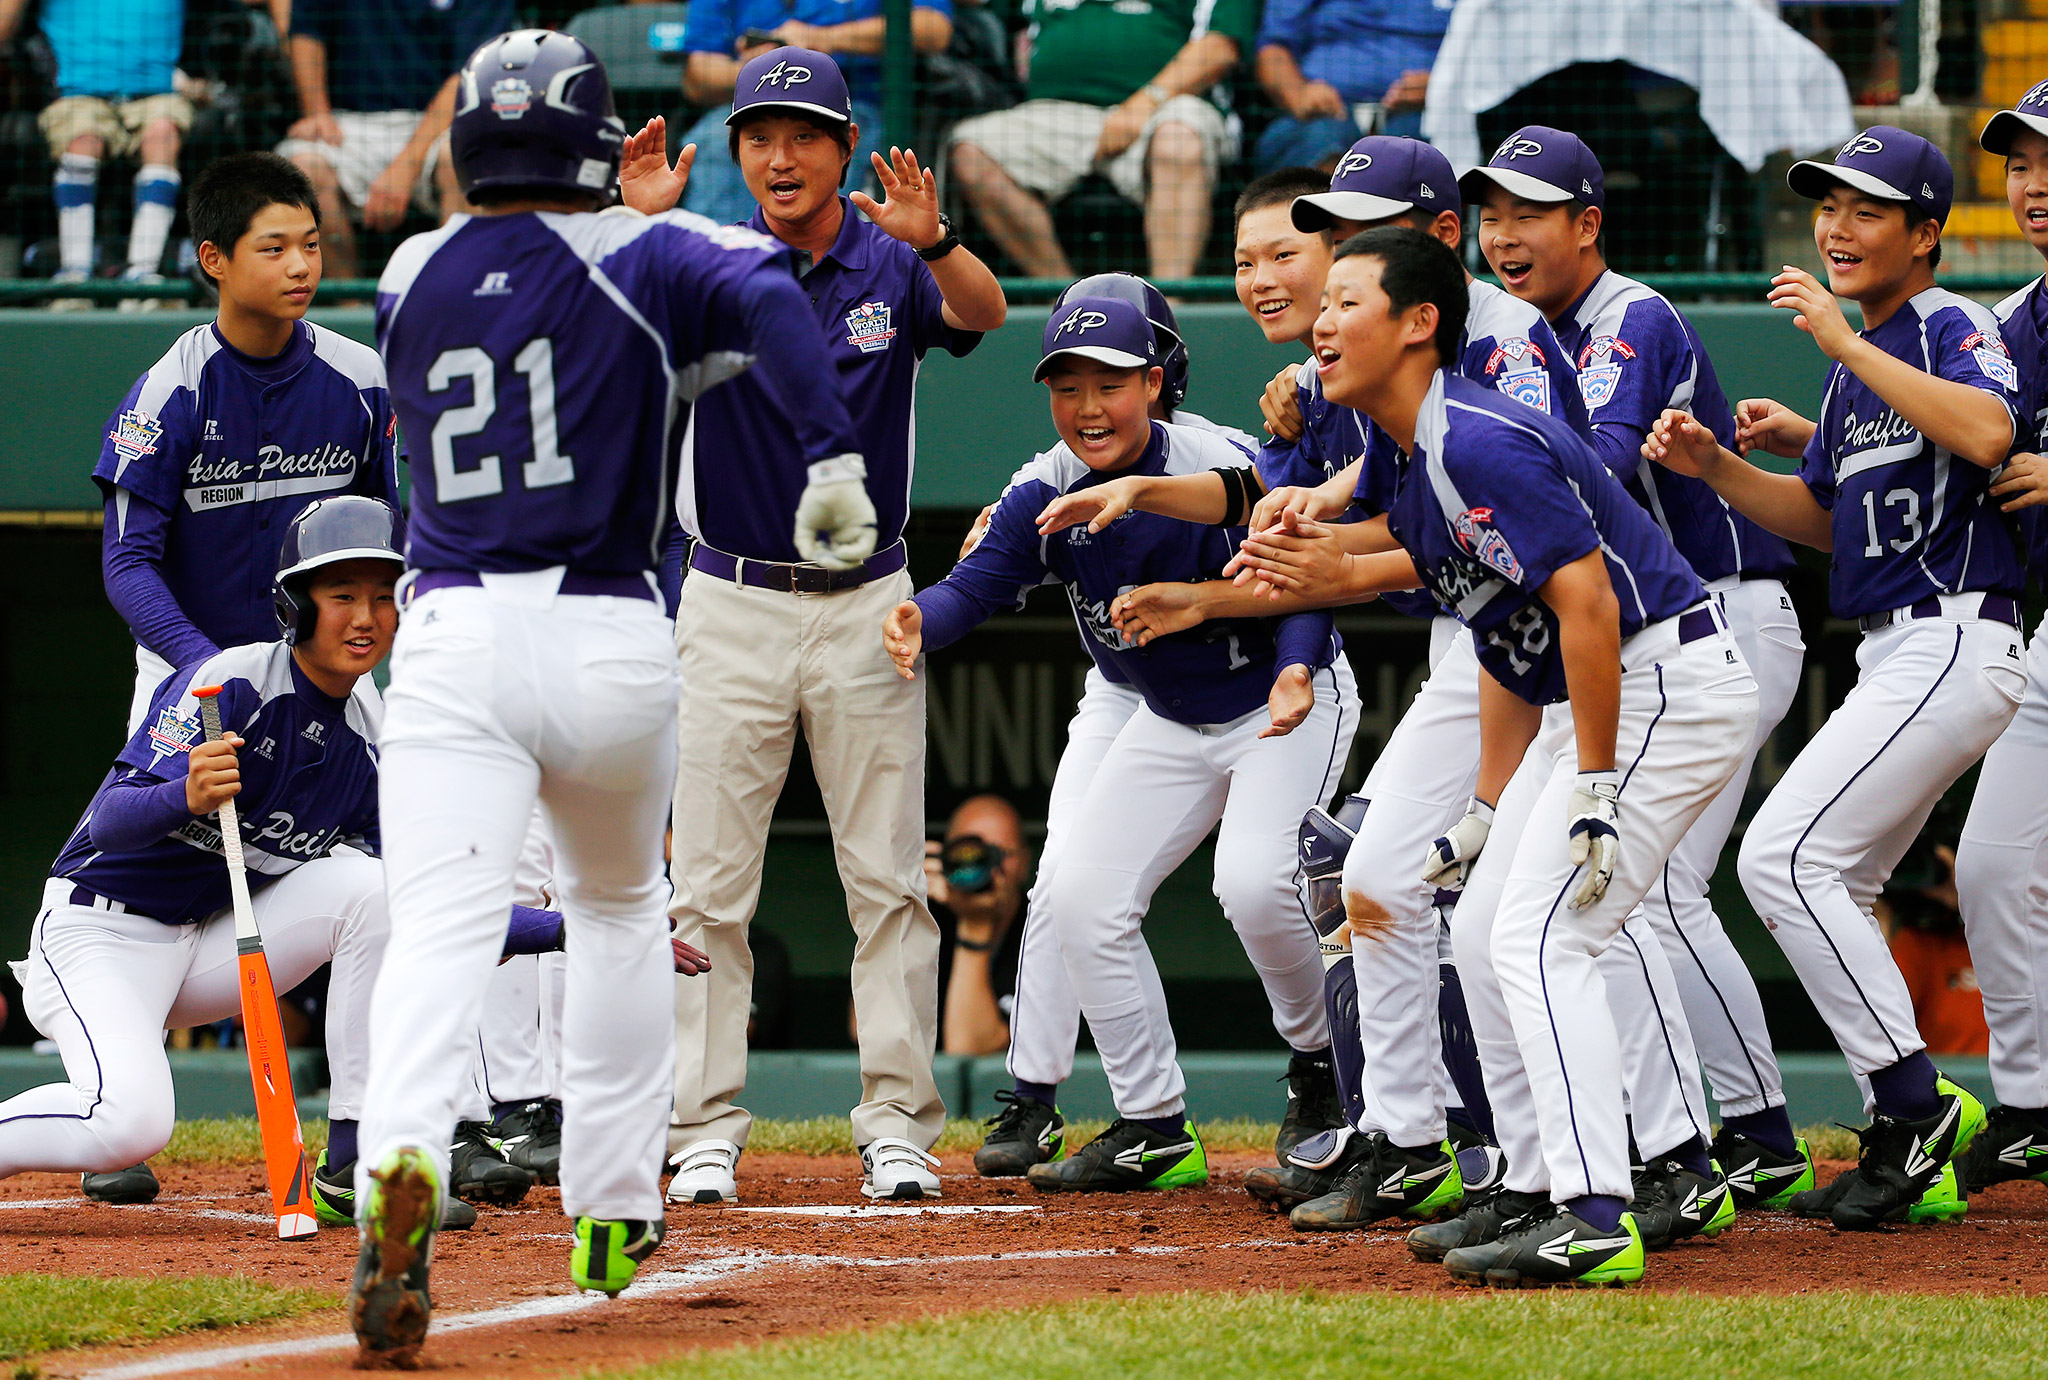 The smiles say it all as Hae Chan Choi of Seoul, South Korea, crosses home plate after hitting a two-run home run against Tokyo, Japan, at the Little League World Series.